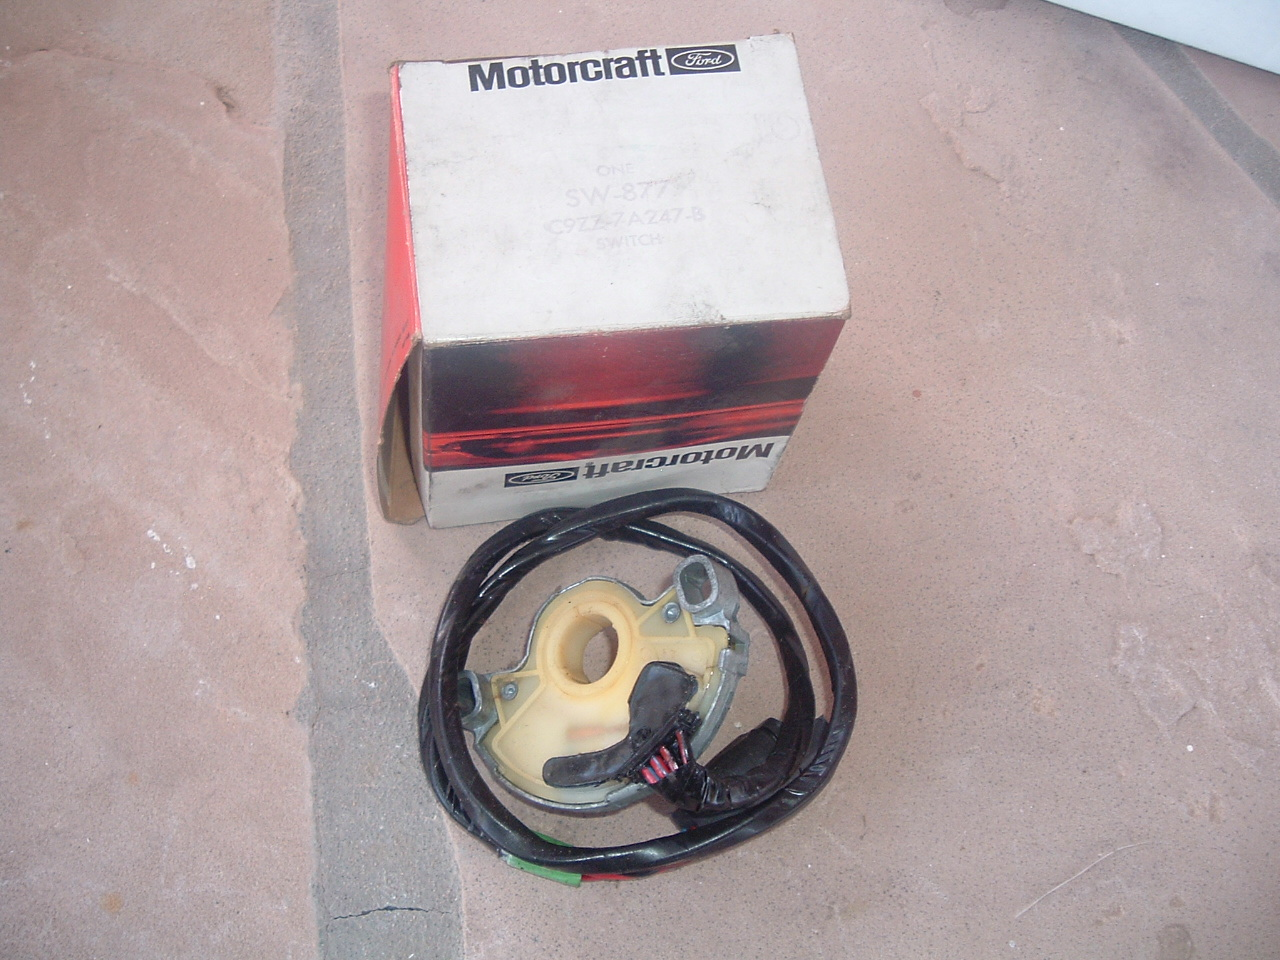 1980 Ford Fairmont 1972 Ford Gran Torino 68 Mustang Ignition Wiring